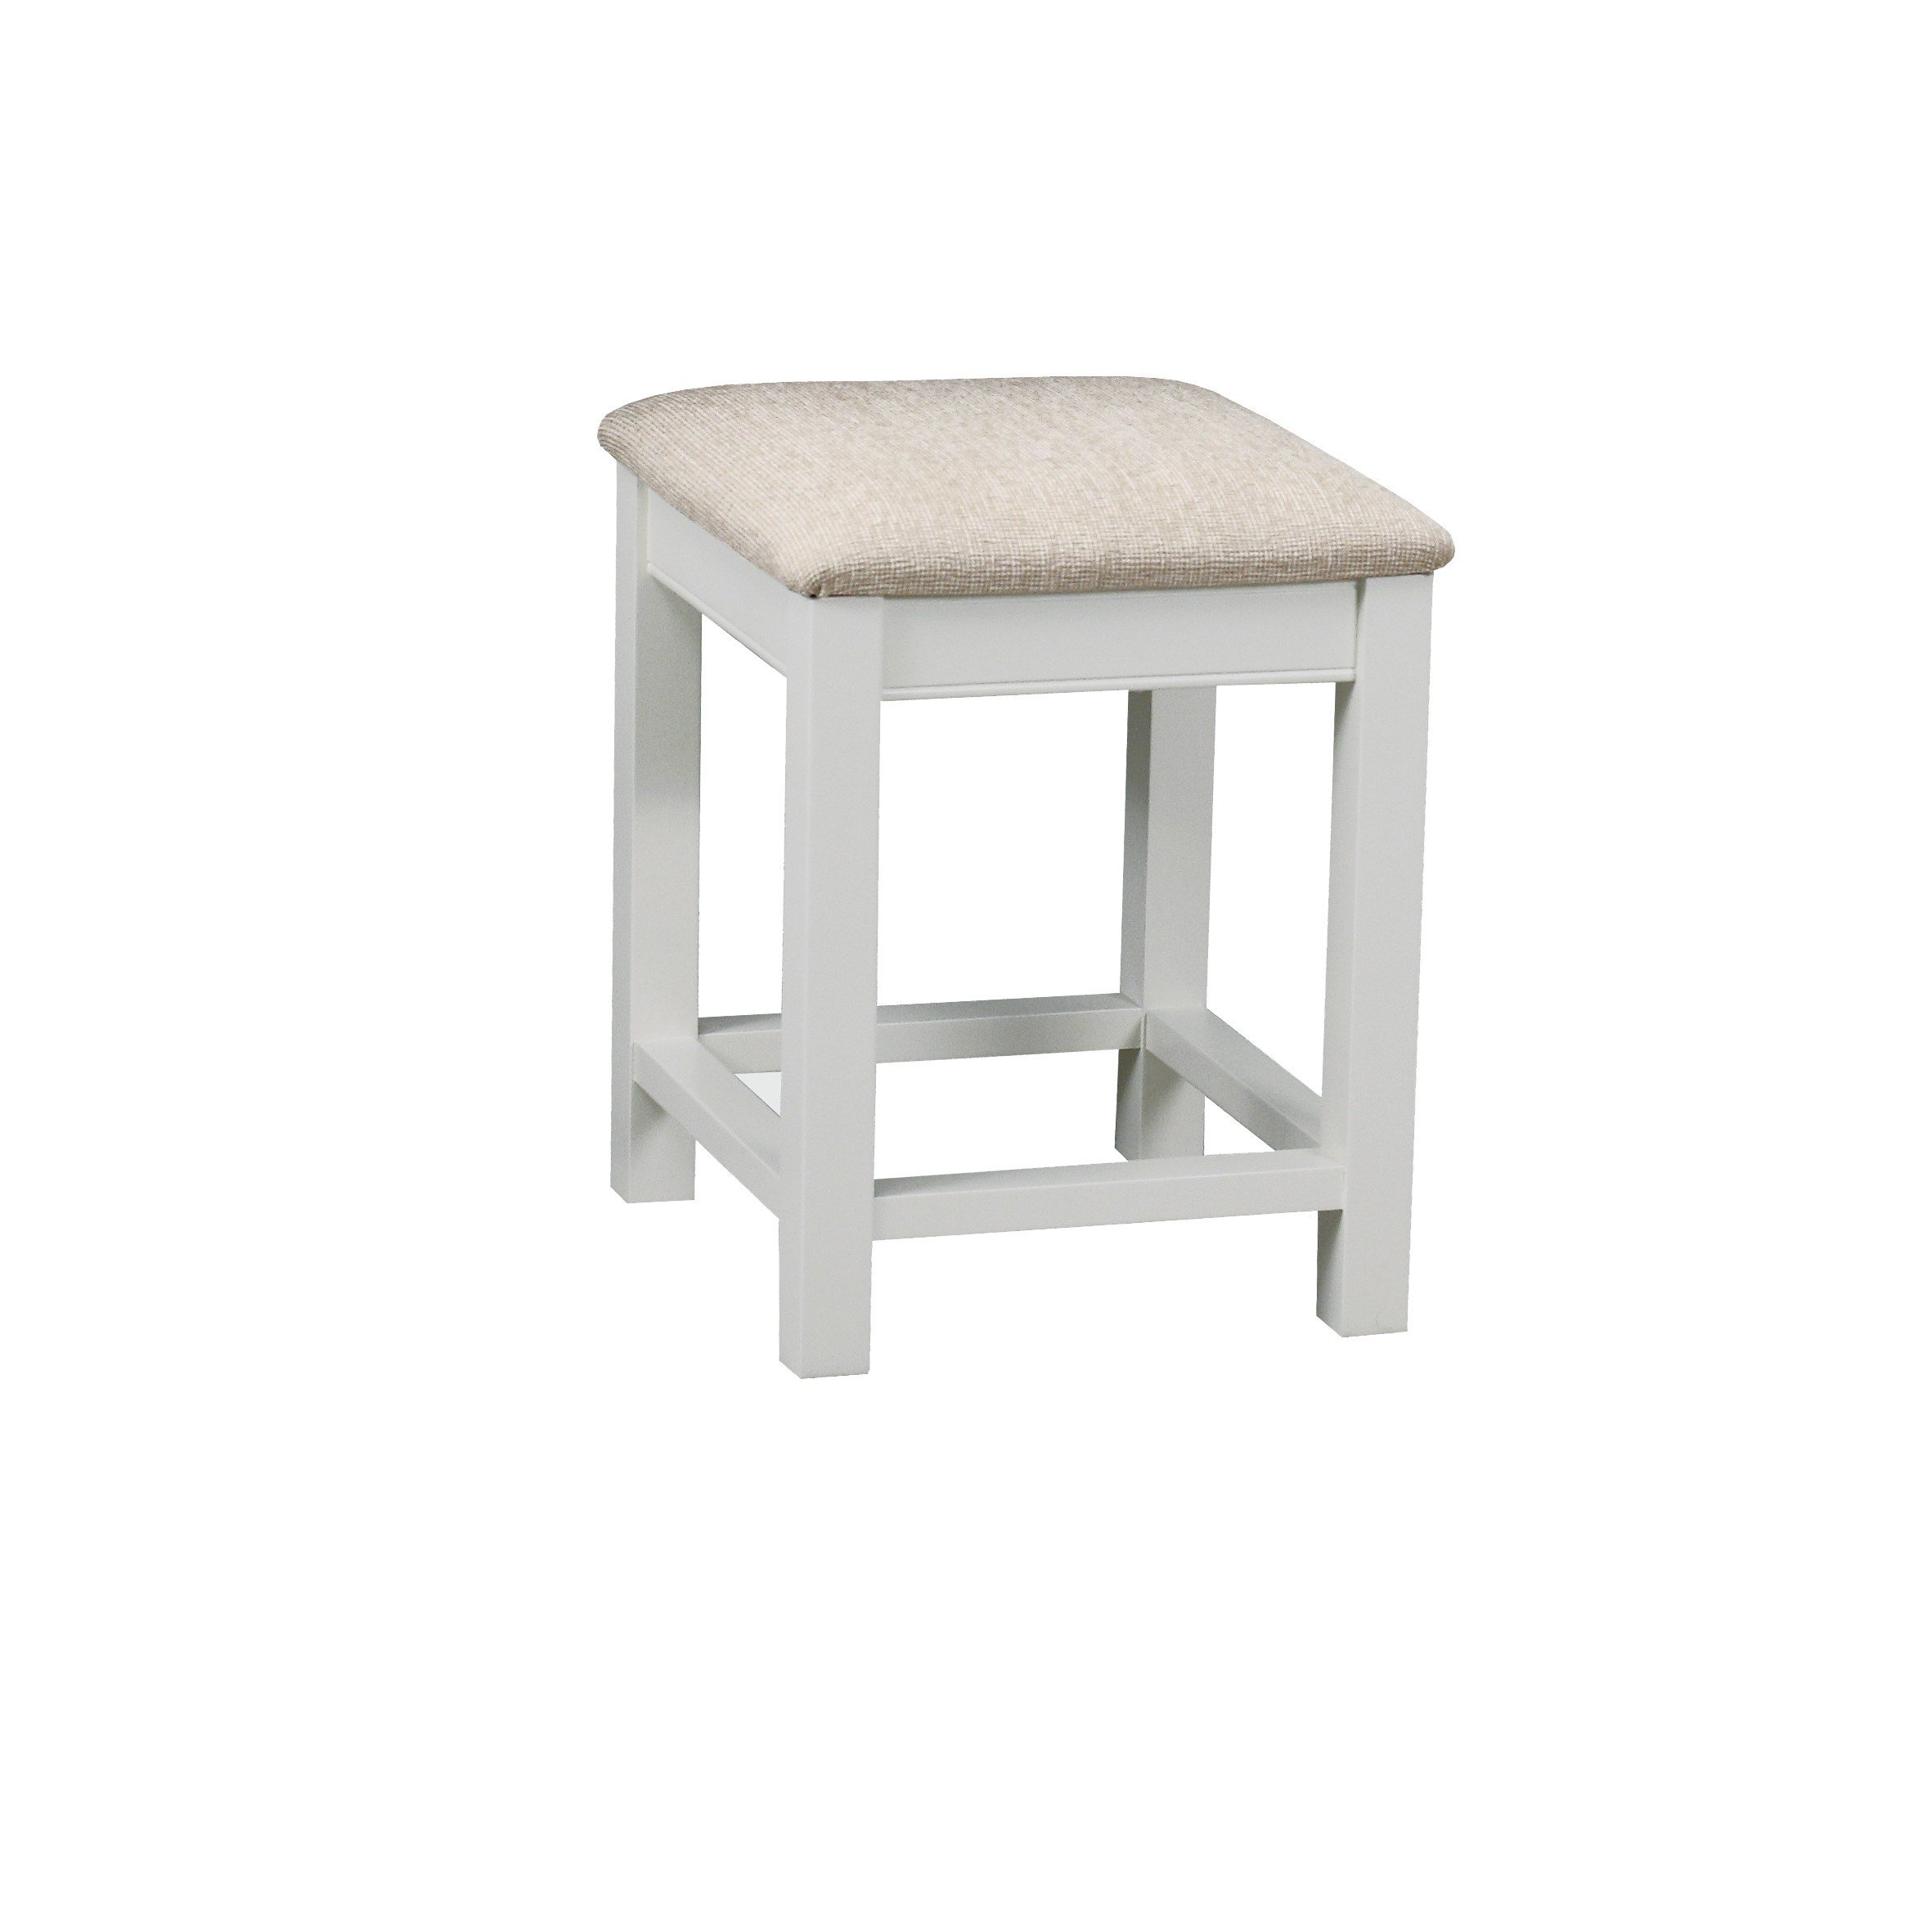 Best Coelo Bedroom Stool With Superior Seat With Pictures